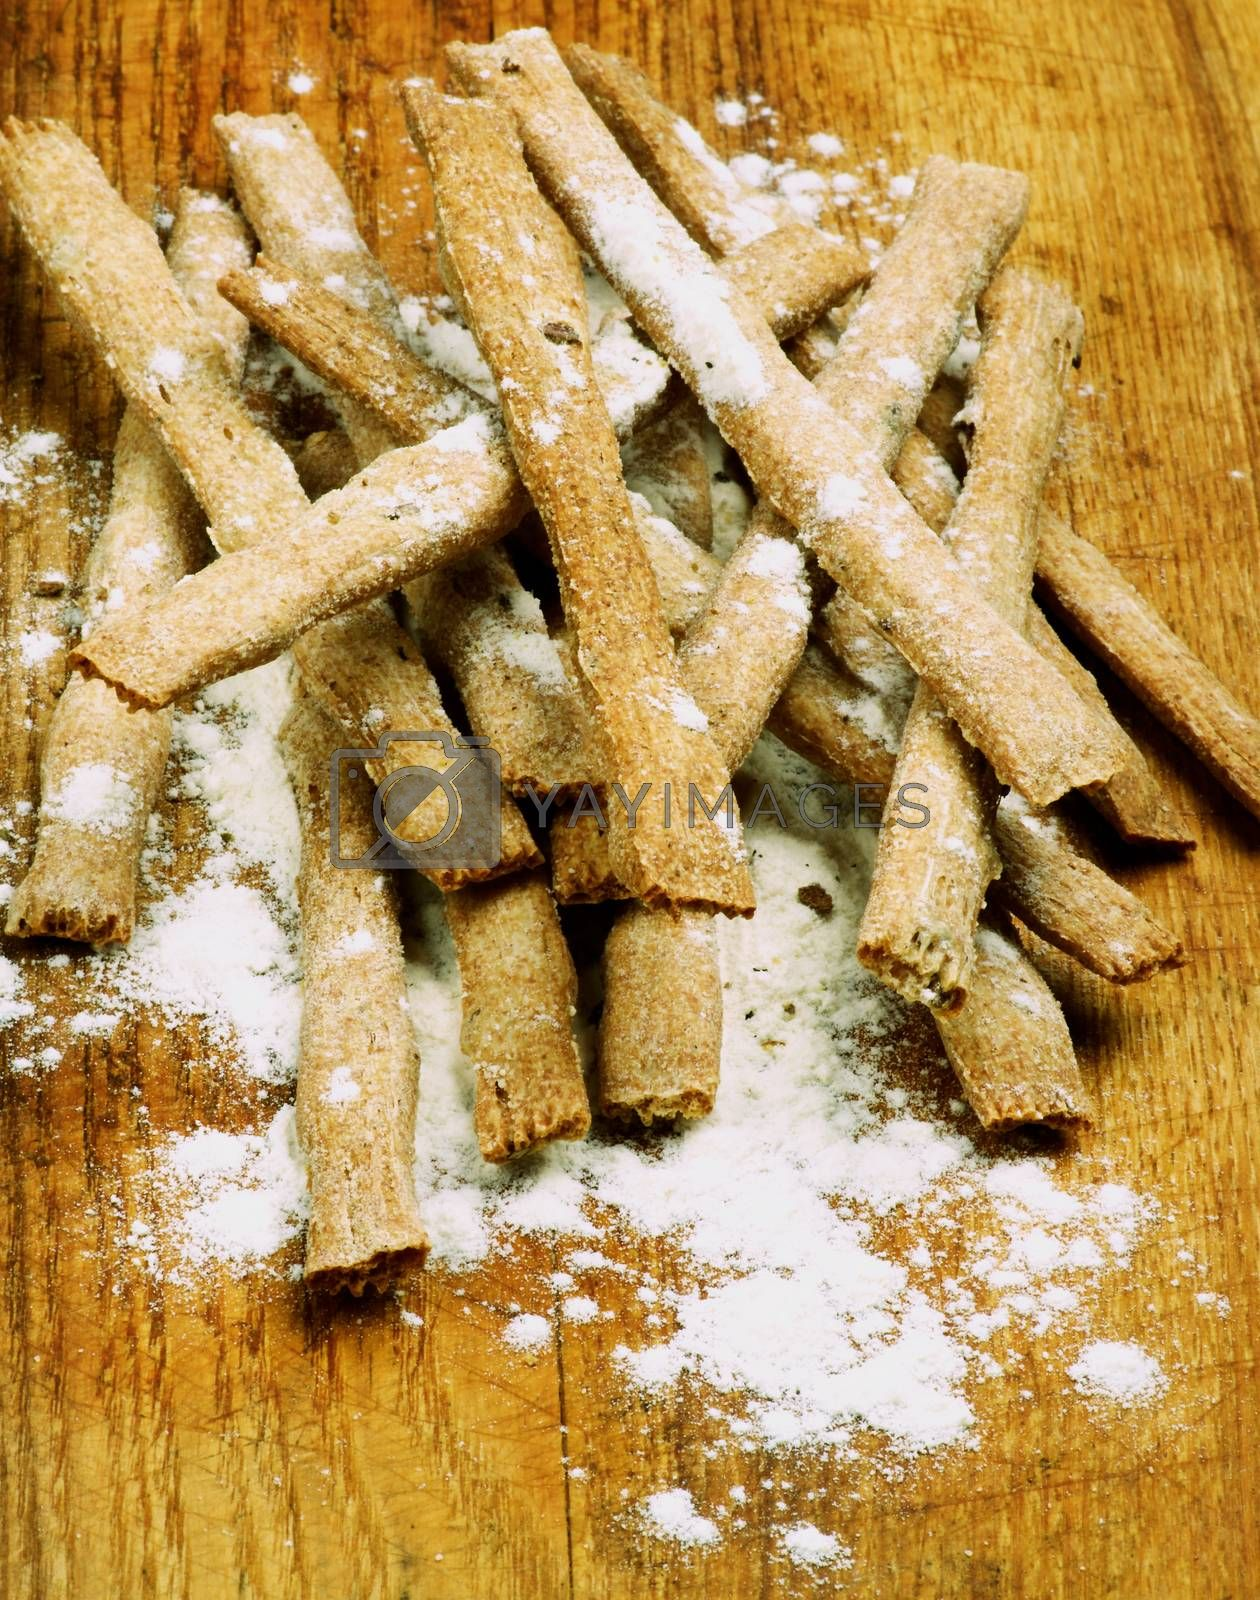 Stack of Freshly Baked Whole Wheat Bread Sticks with Dough closeup on Wooden Cutting Board